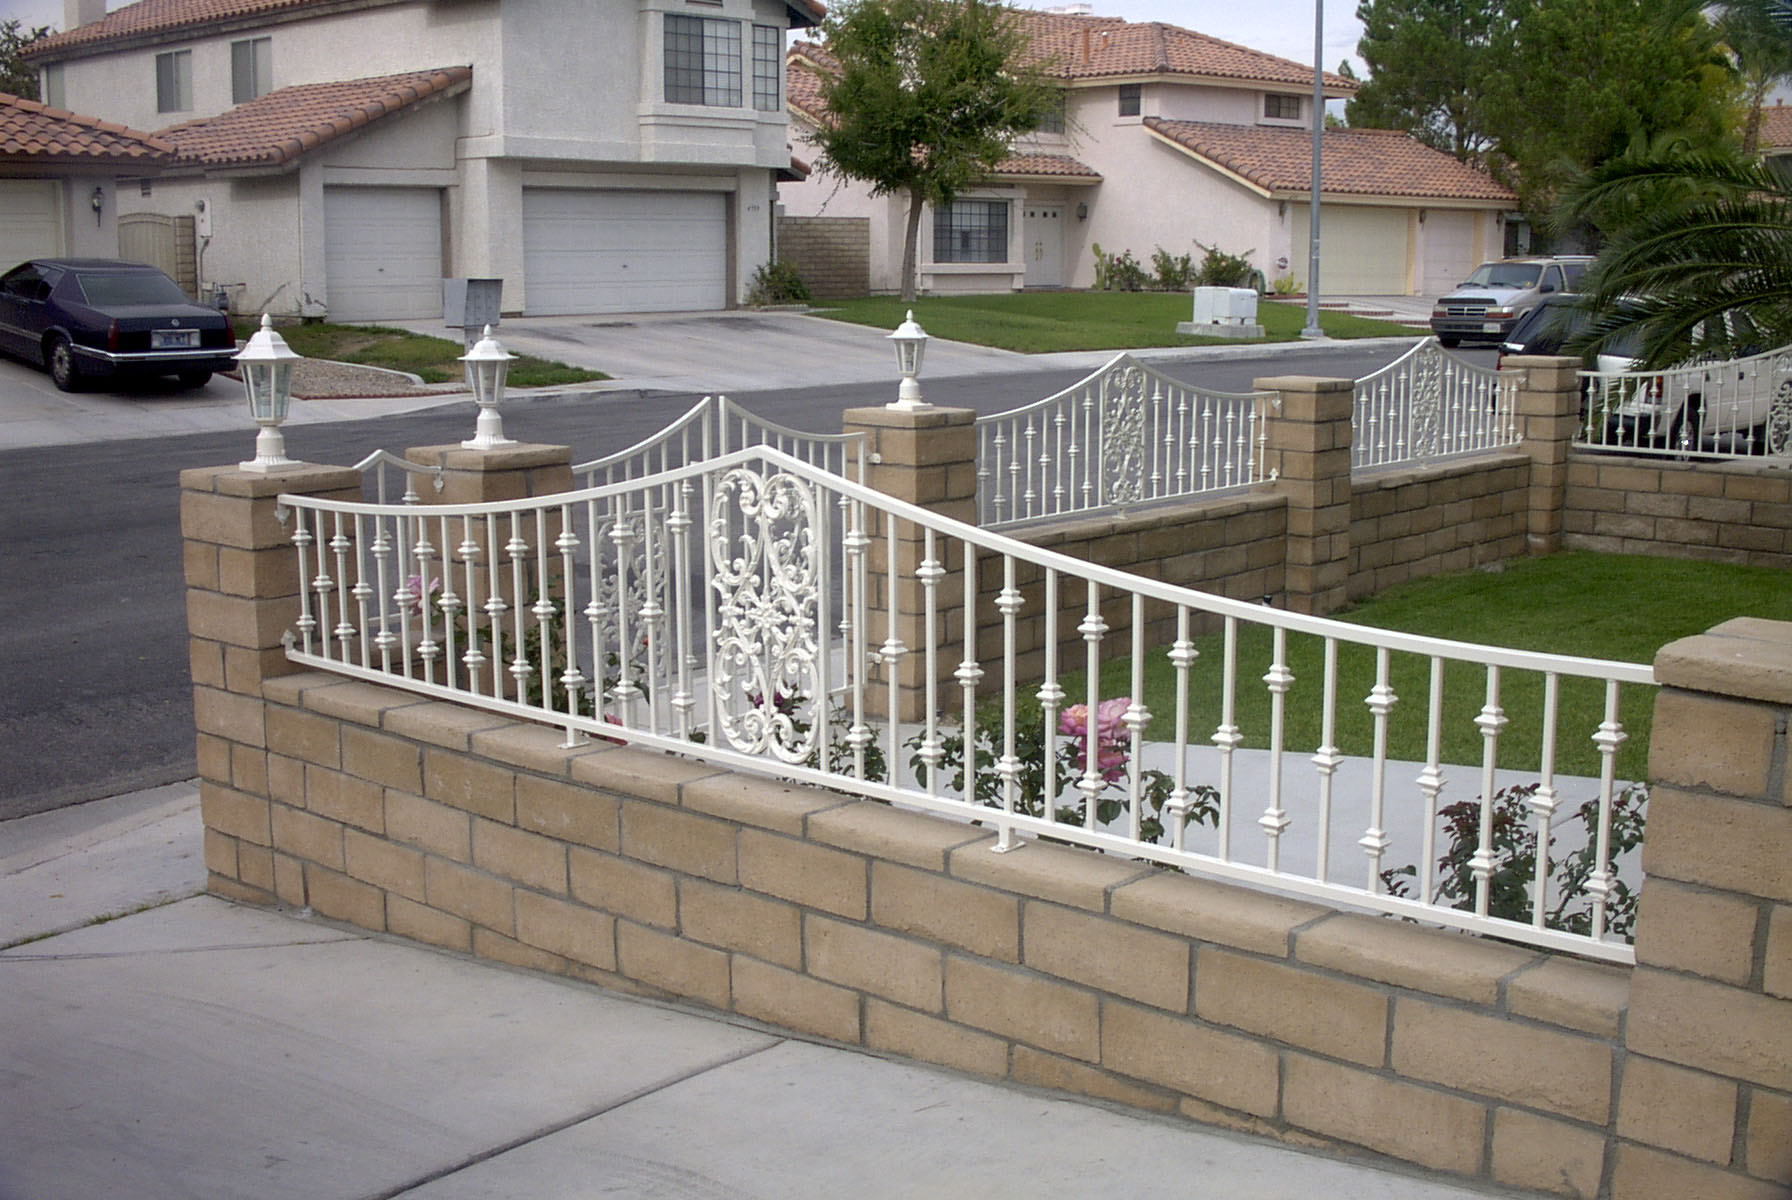 Lifestyle Fences - DIY Fences - Trellis Gates - Archways